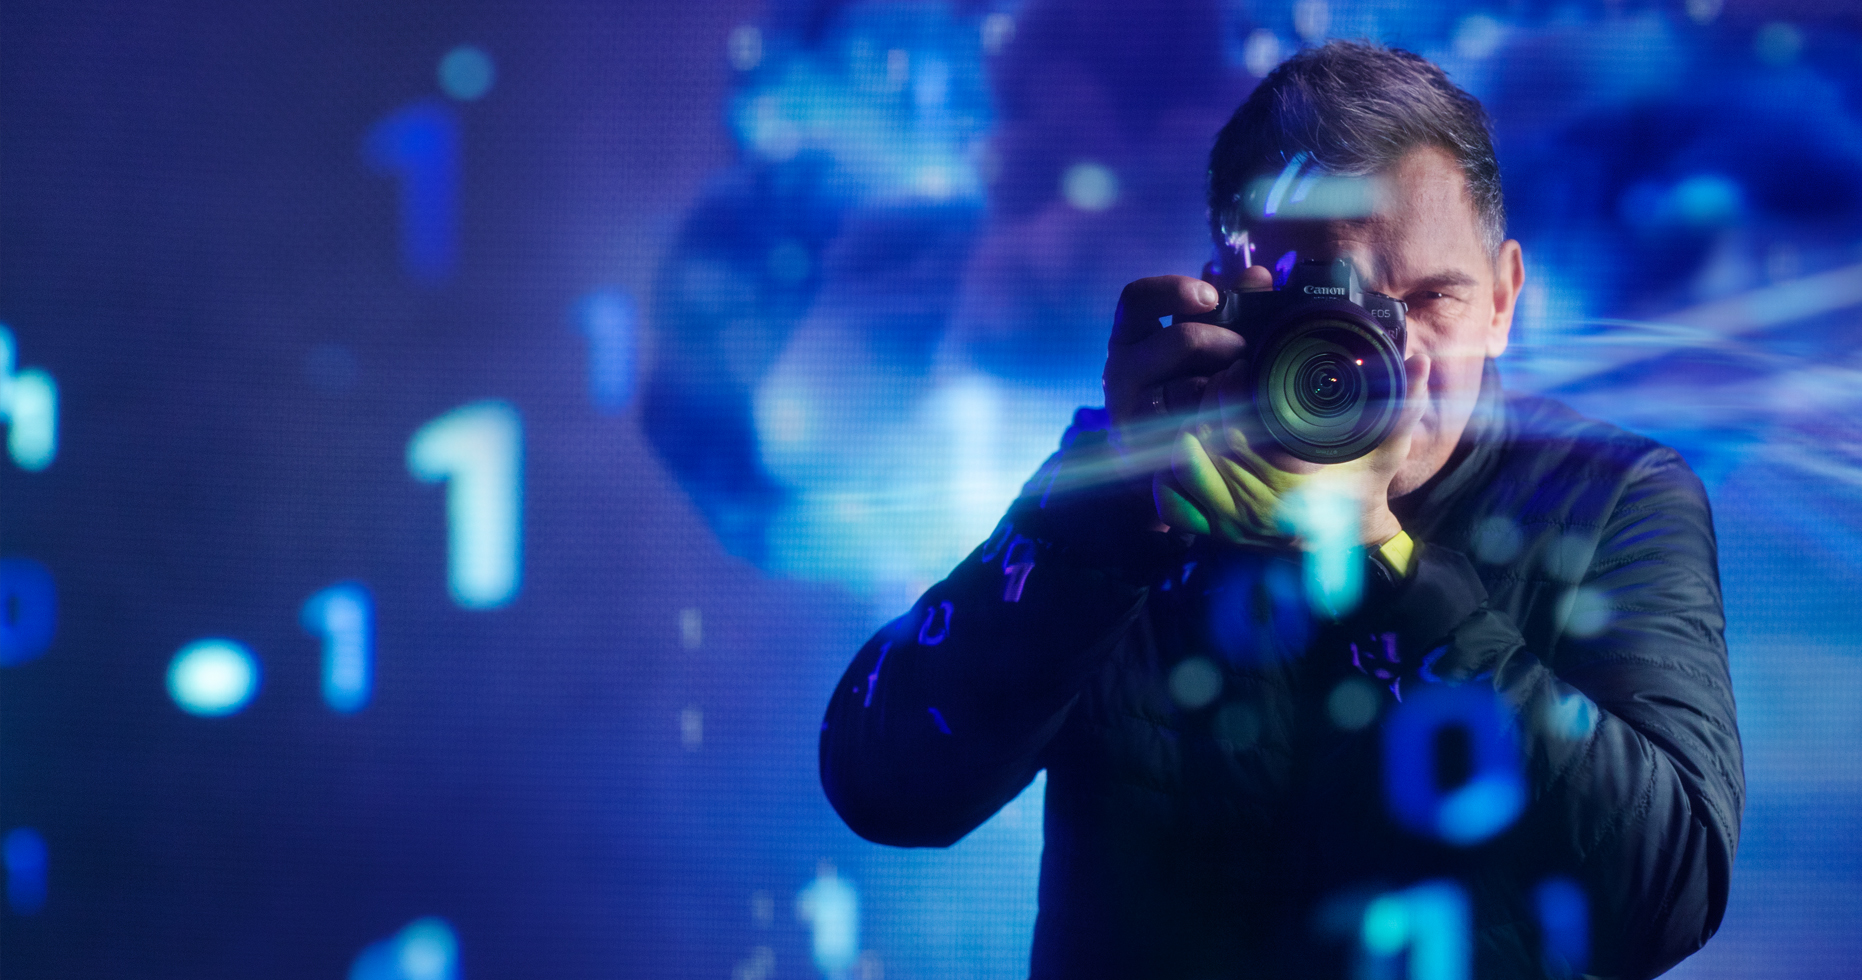 A man holds a Canon EOS R camera in hand, data is projected over him